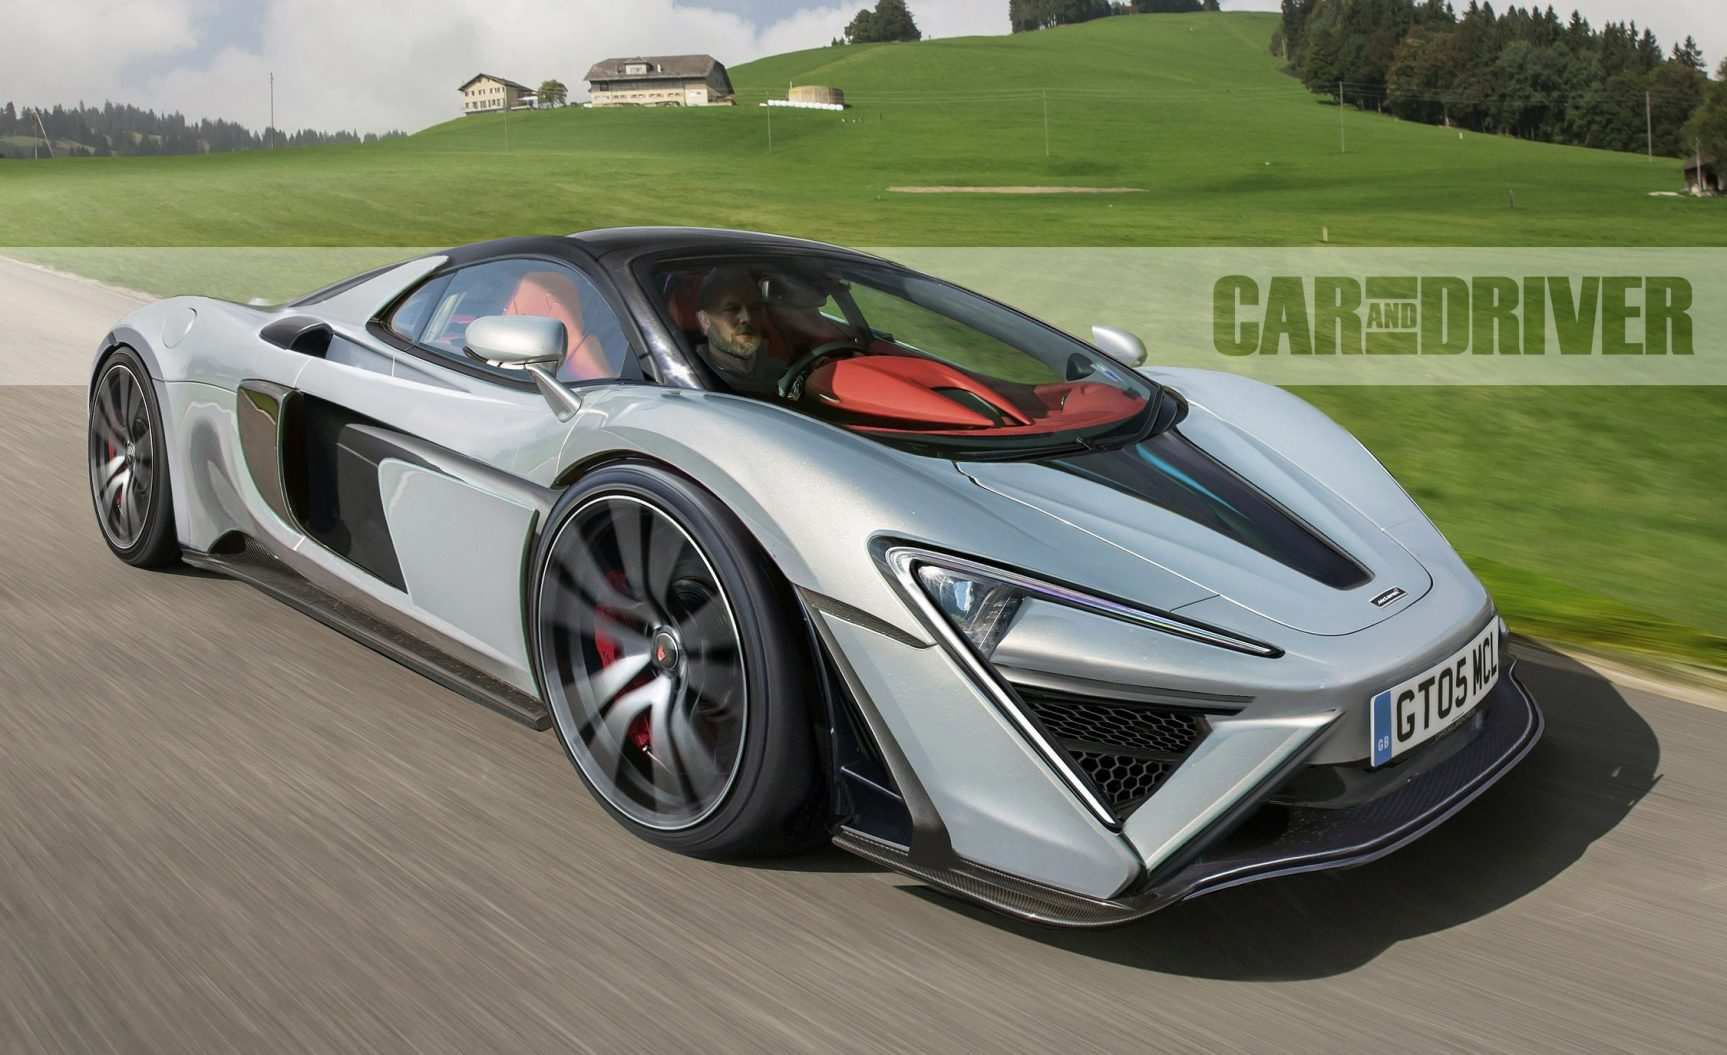 42 New 2019 Mclaren Sedan Price by 2019 Mclaren Sedan